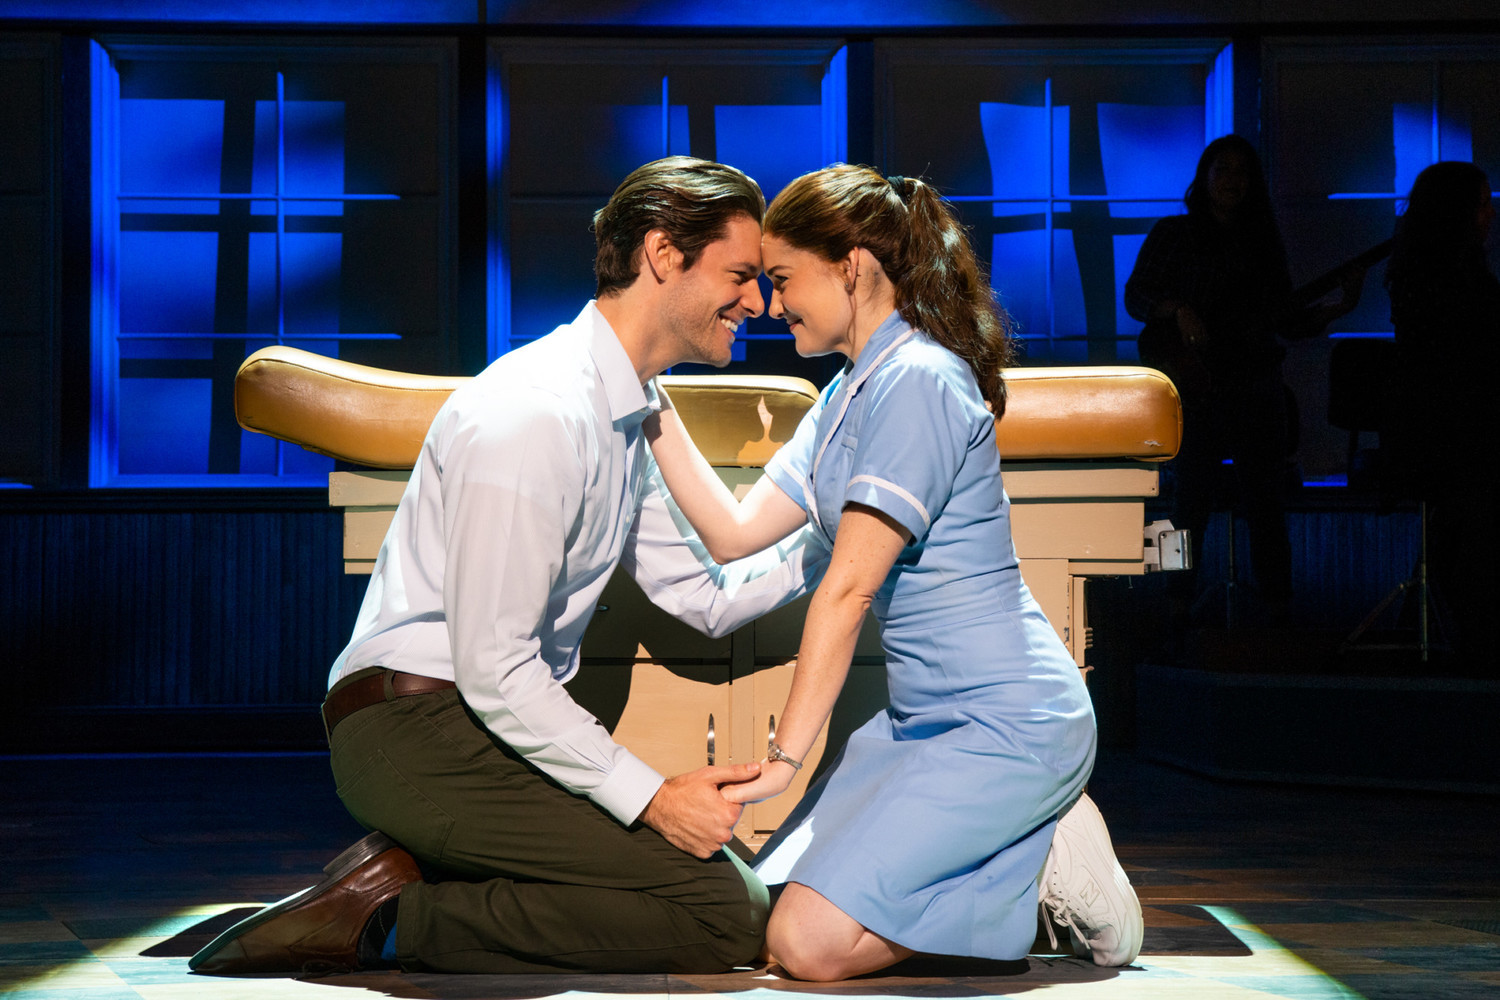 BWW Review: Fresh Passion and Fresh Pies Served Up in WAITRESS at Murat Theatre